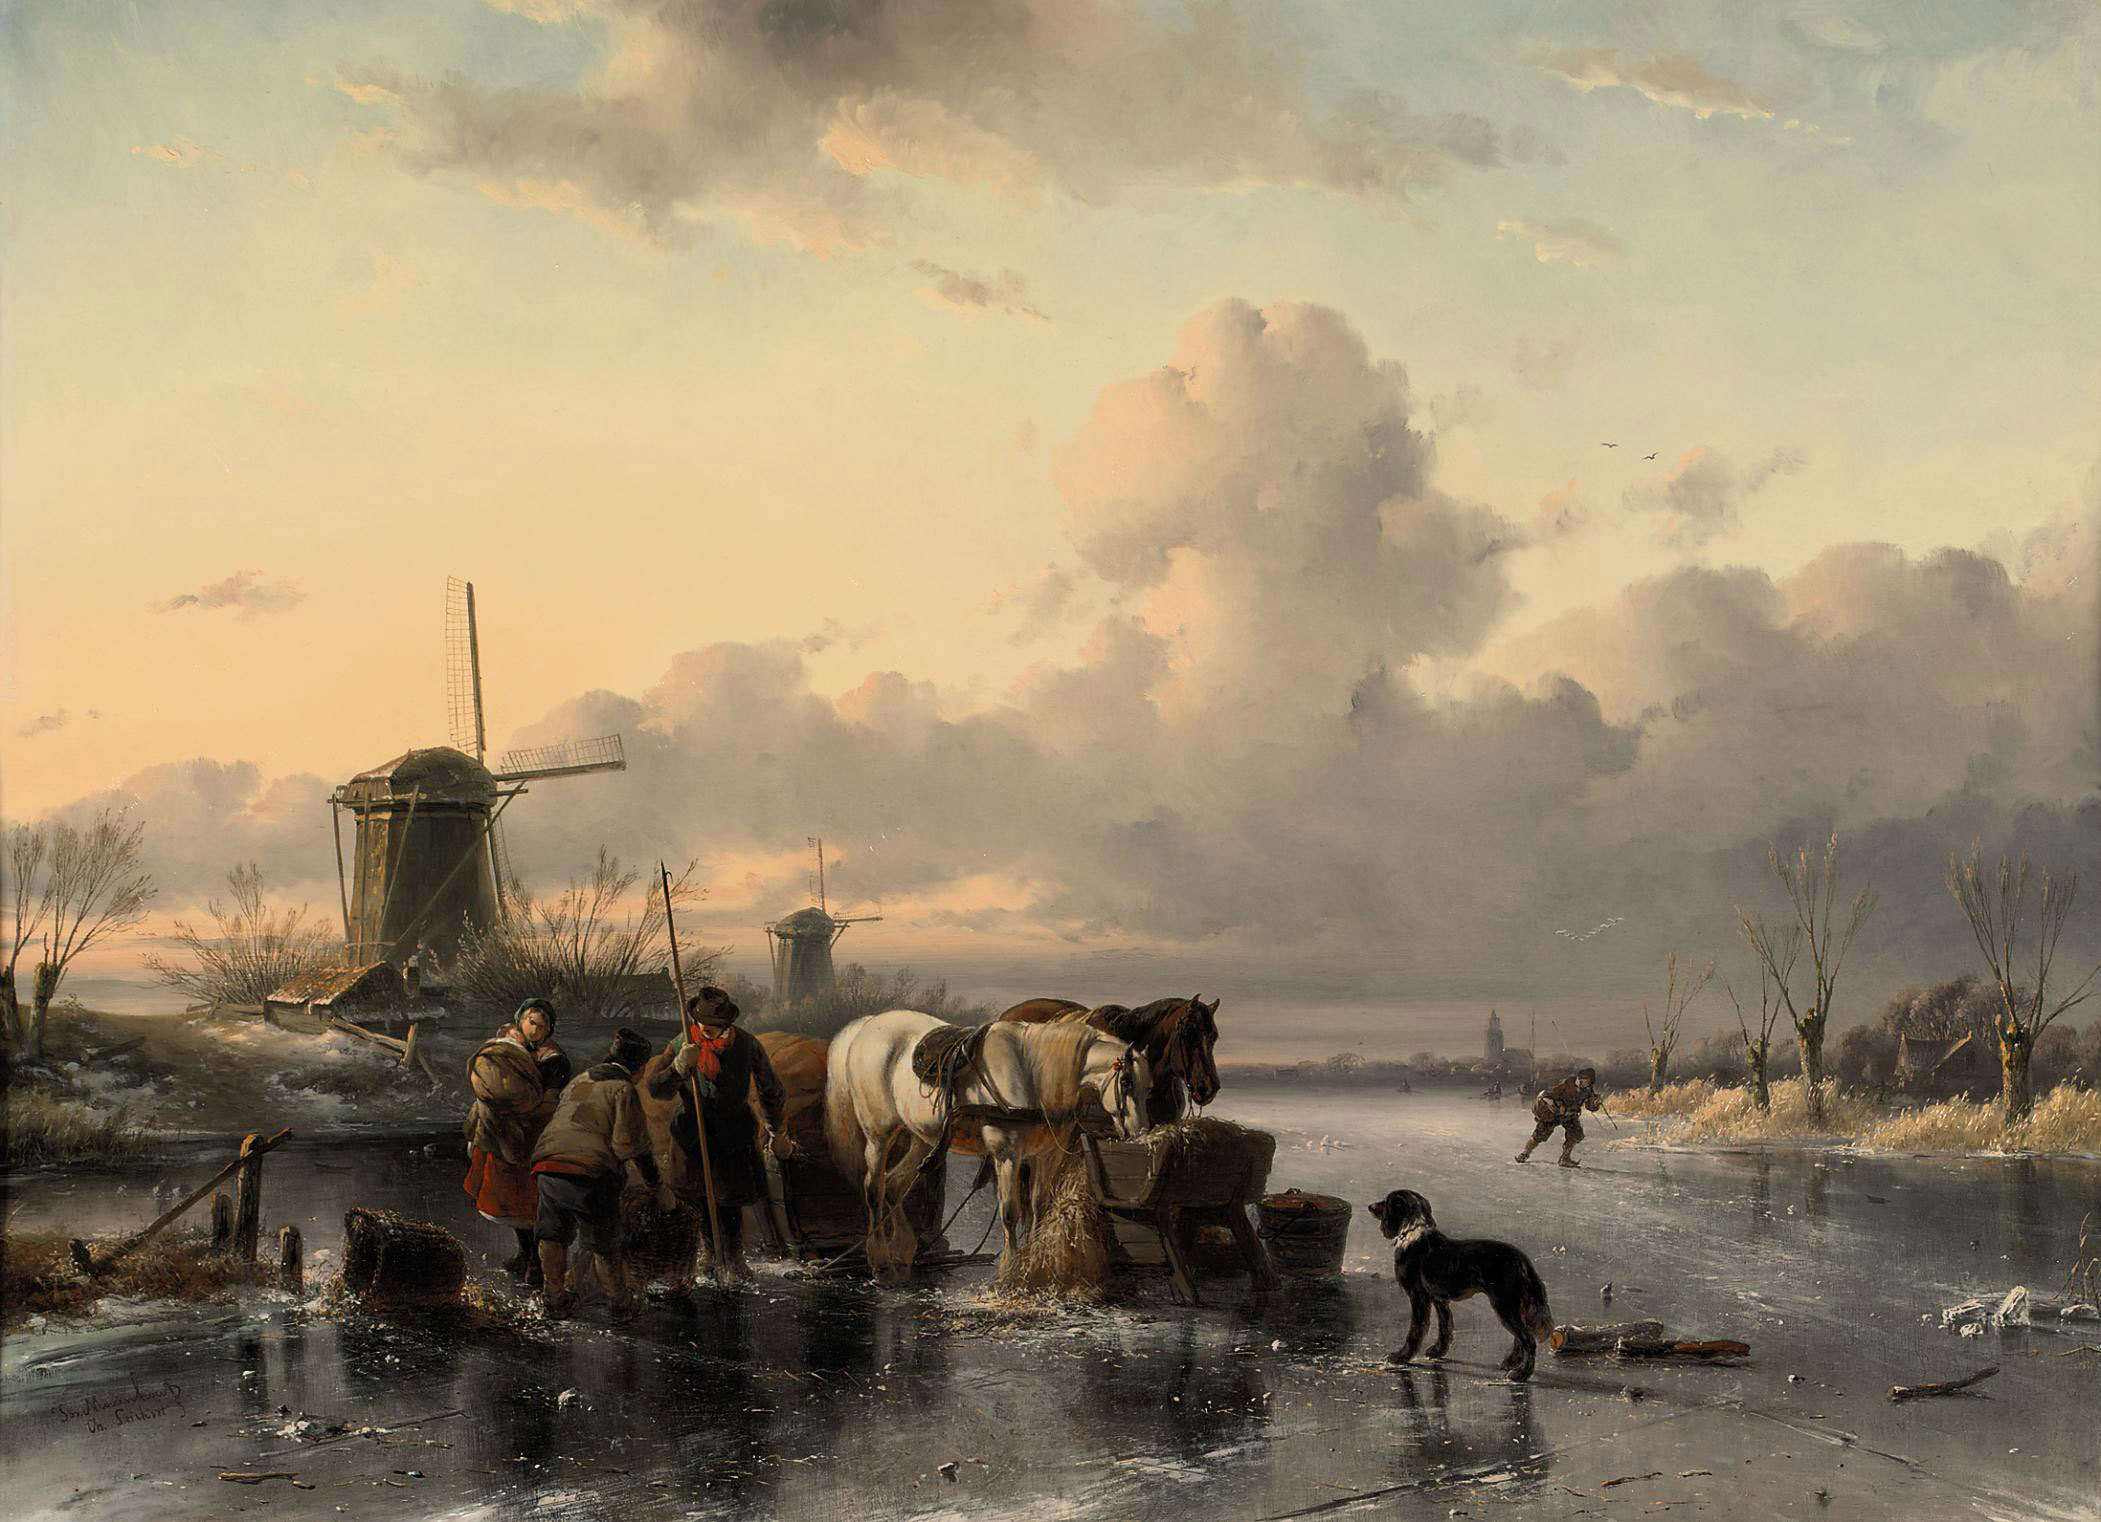 Tending to the horses on a frozen river